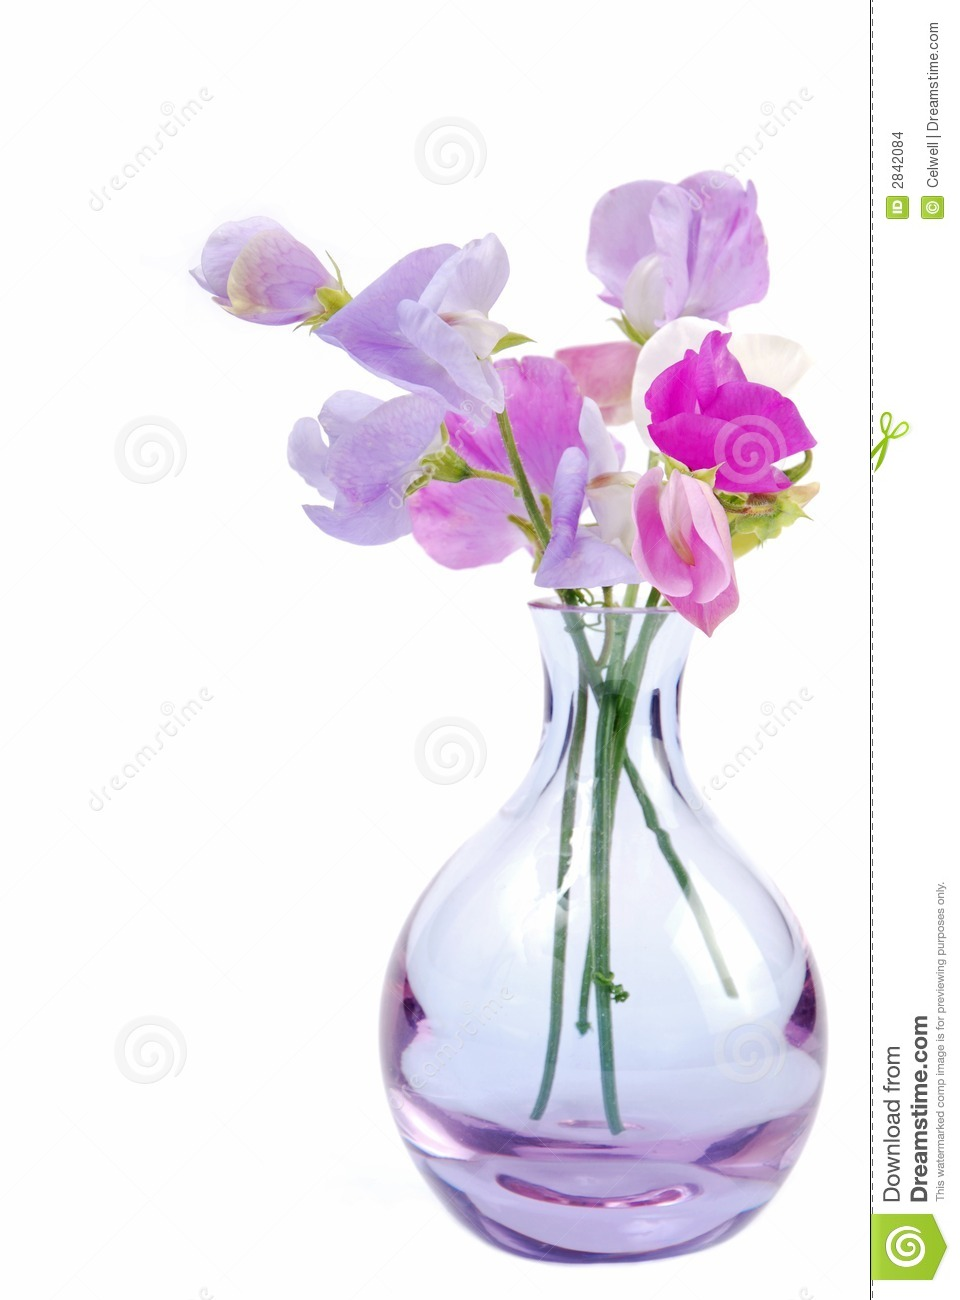 Vase of sweet pea flowers stock photo image of peas background vase of sweet pea flowers reviewsmspy